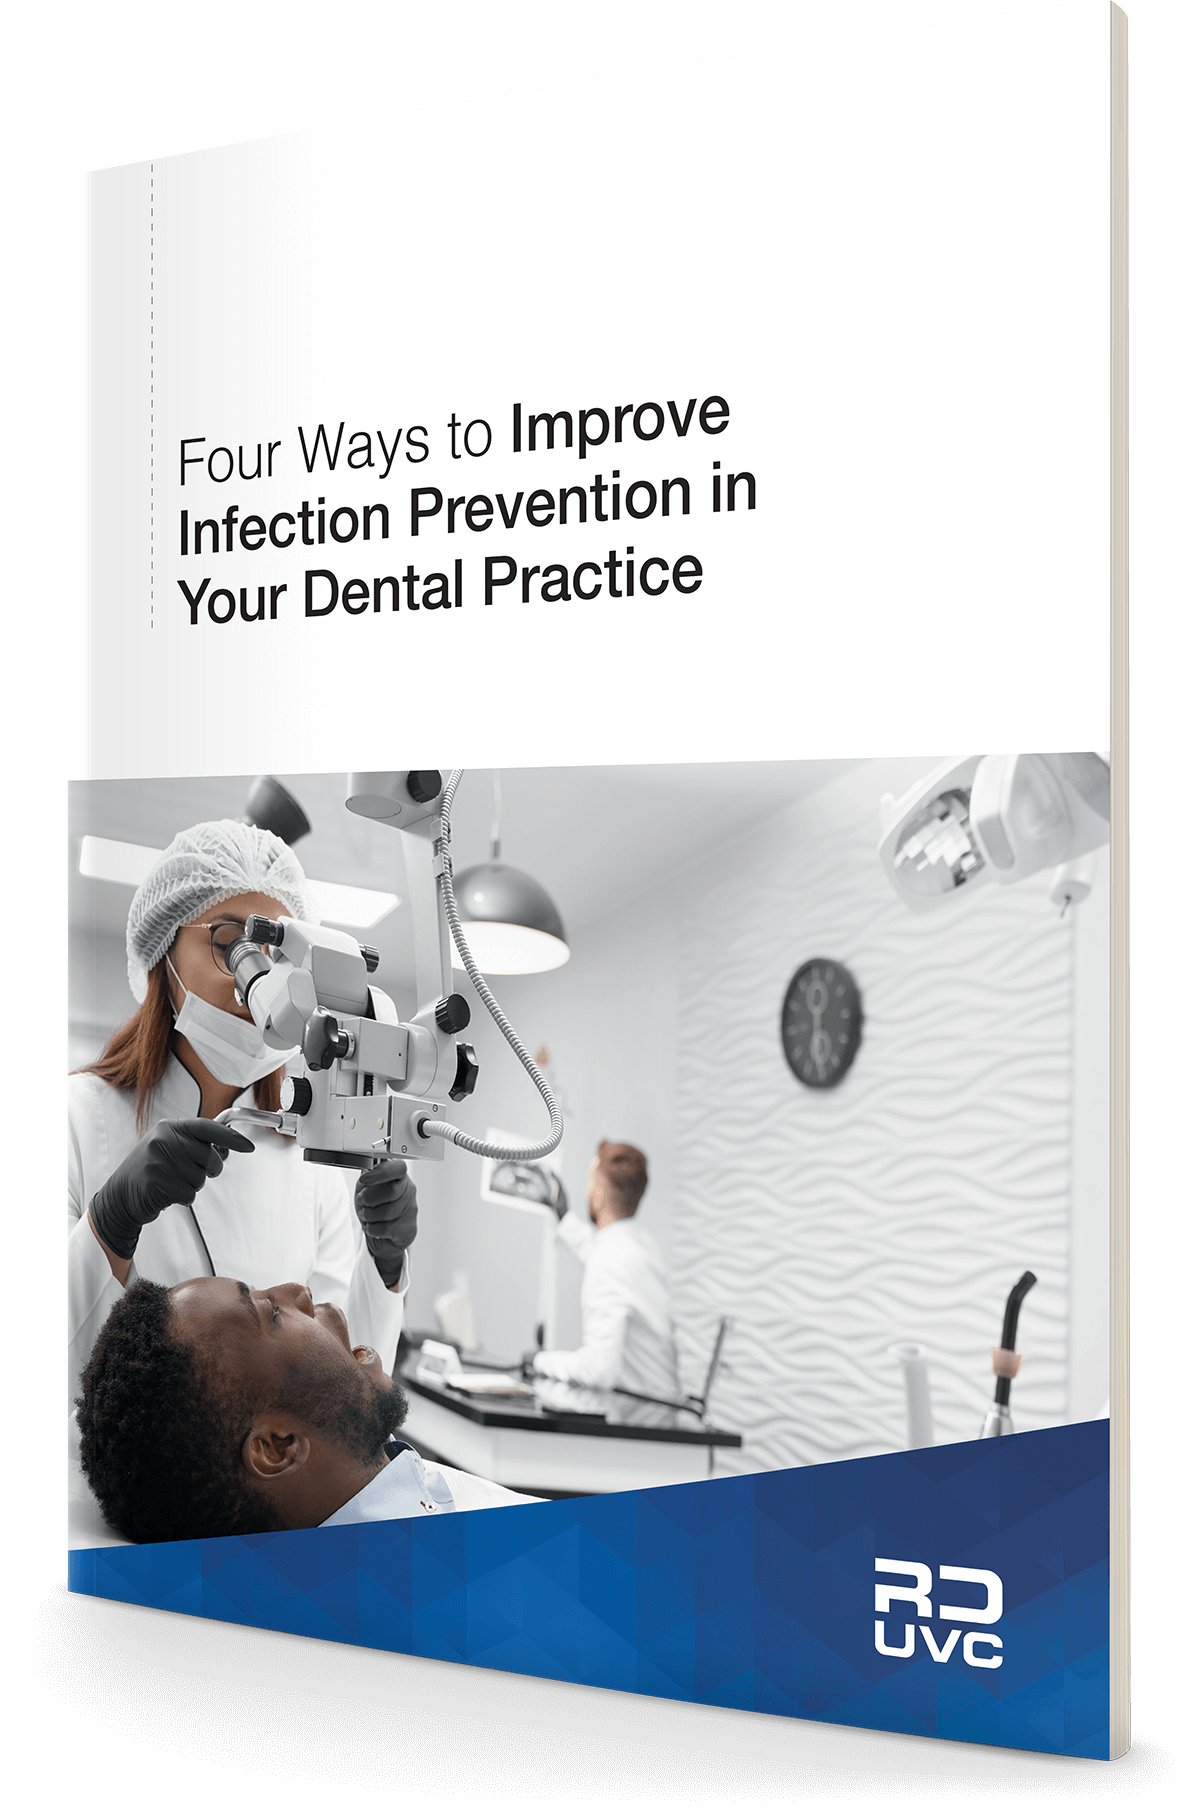 Four Ways to Improve Infection Prevention in Your Dental Practice